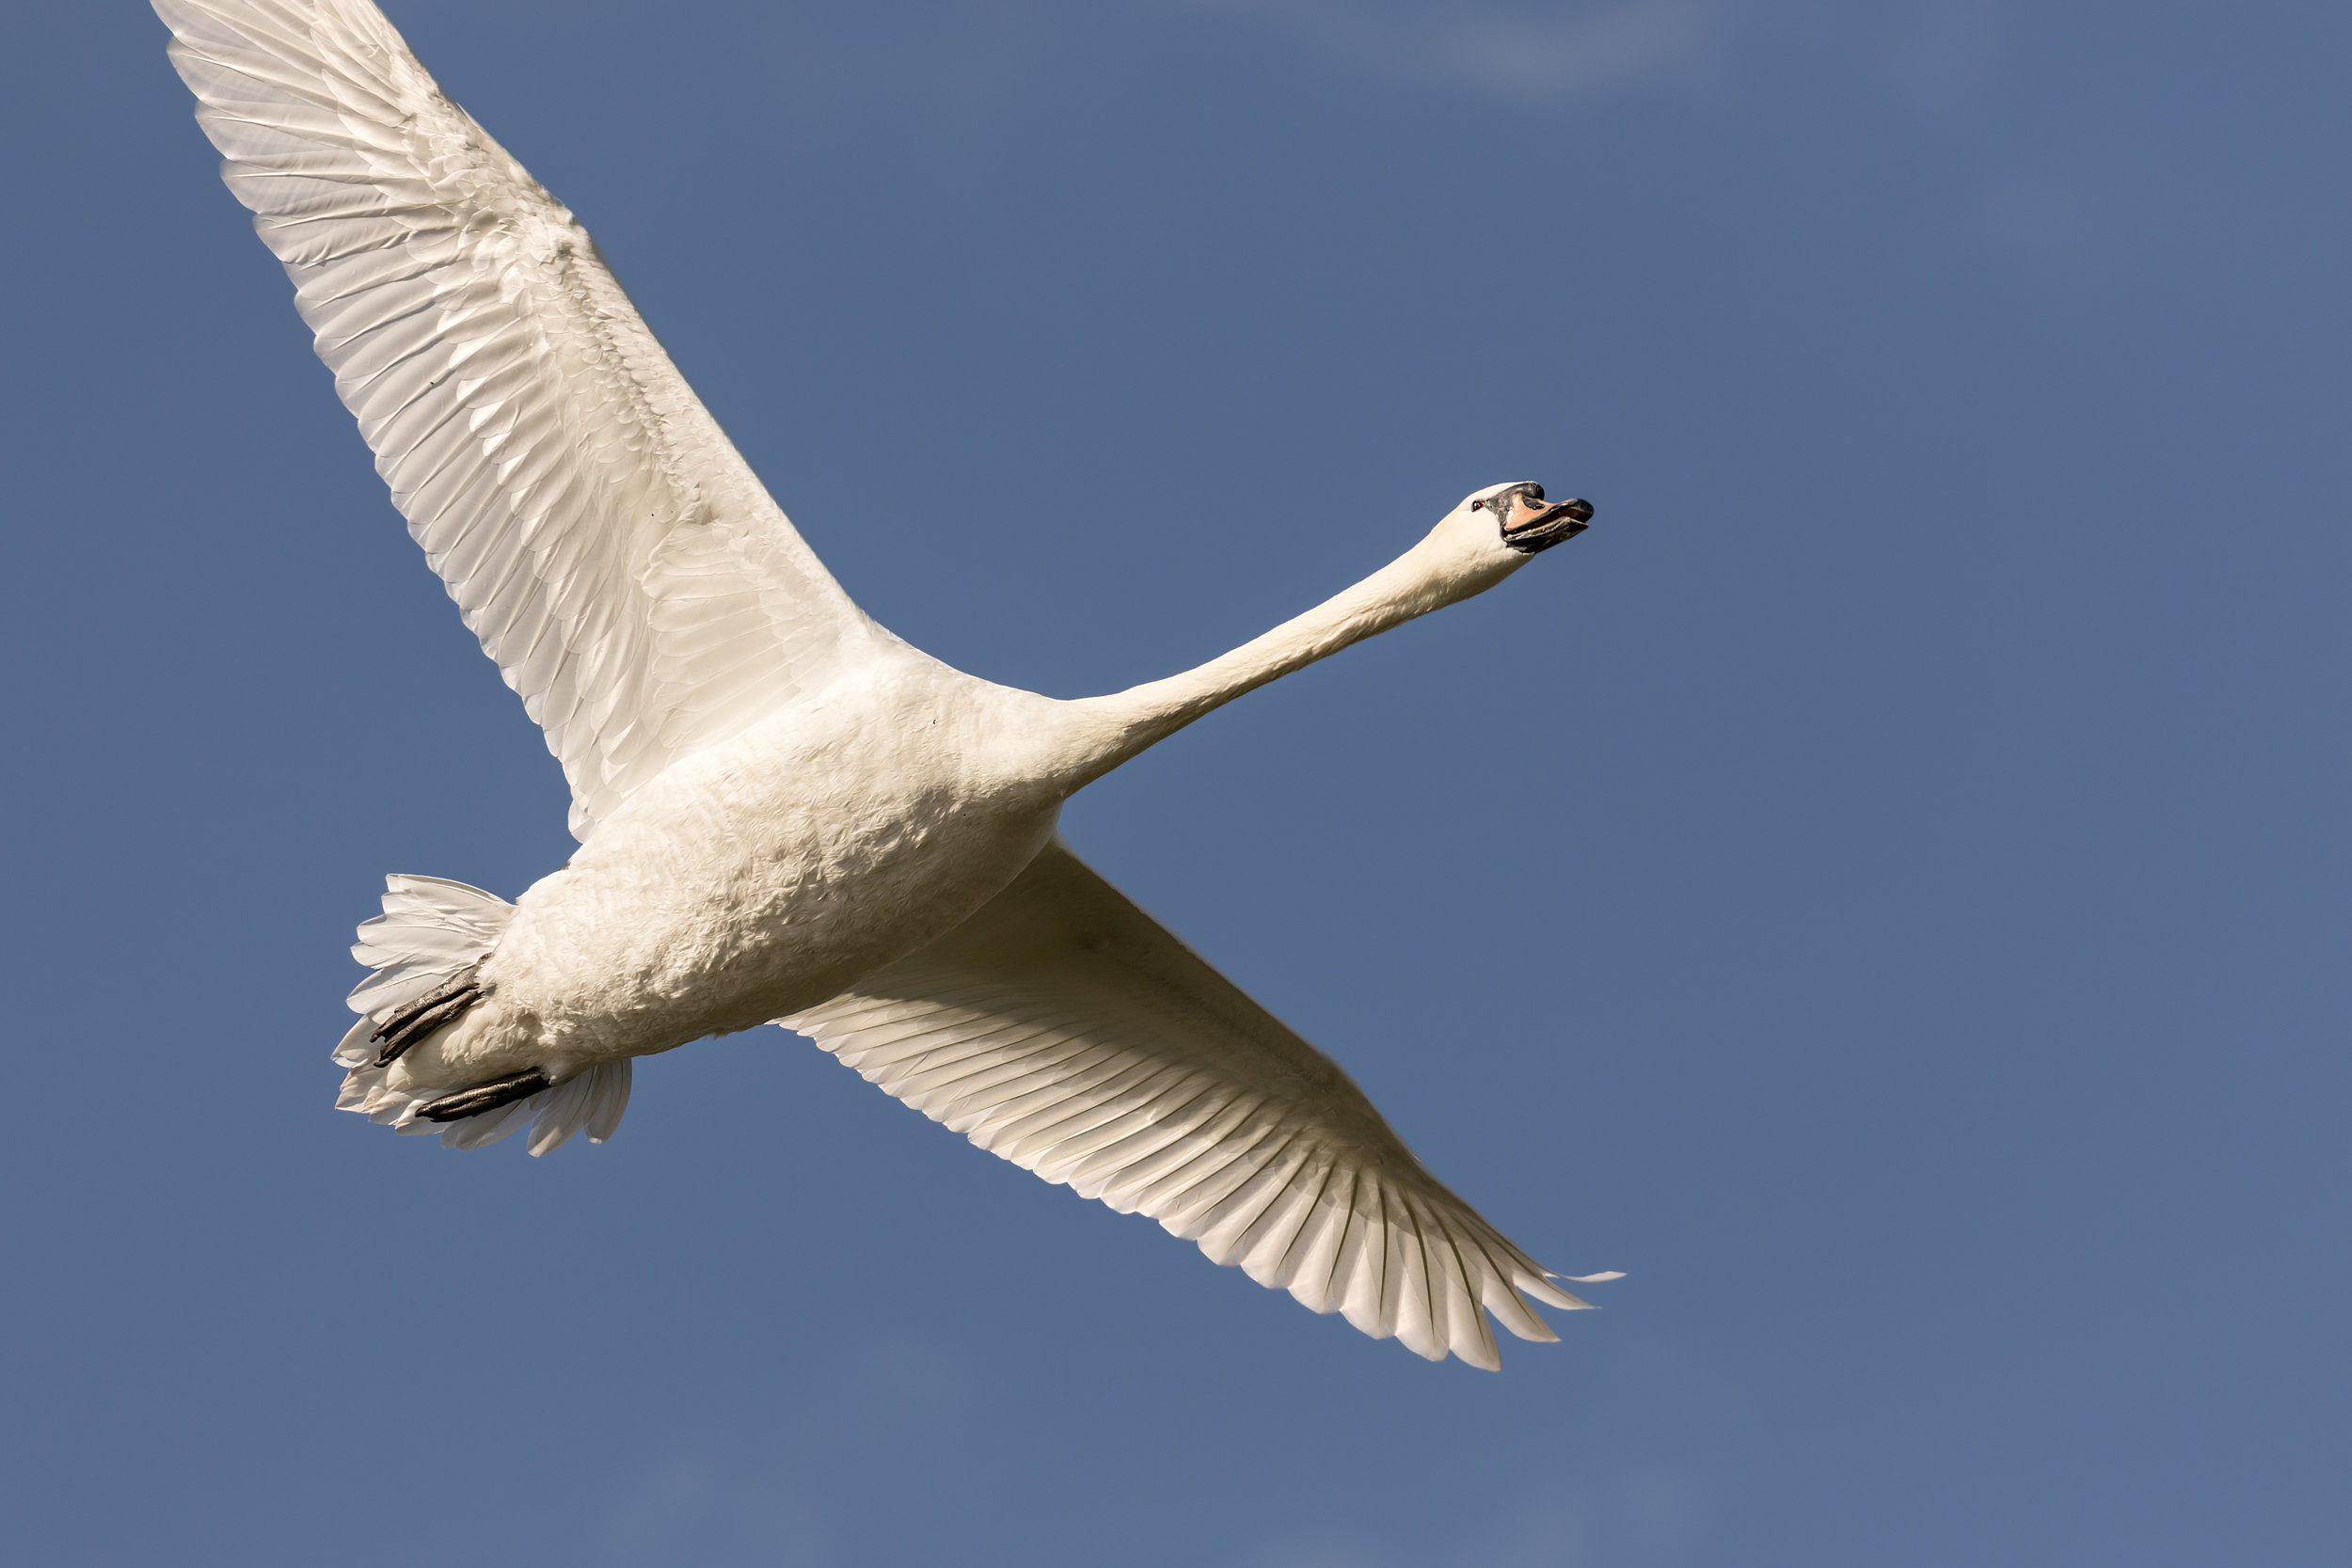 Another low flying Swan!